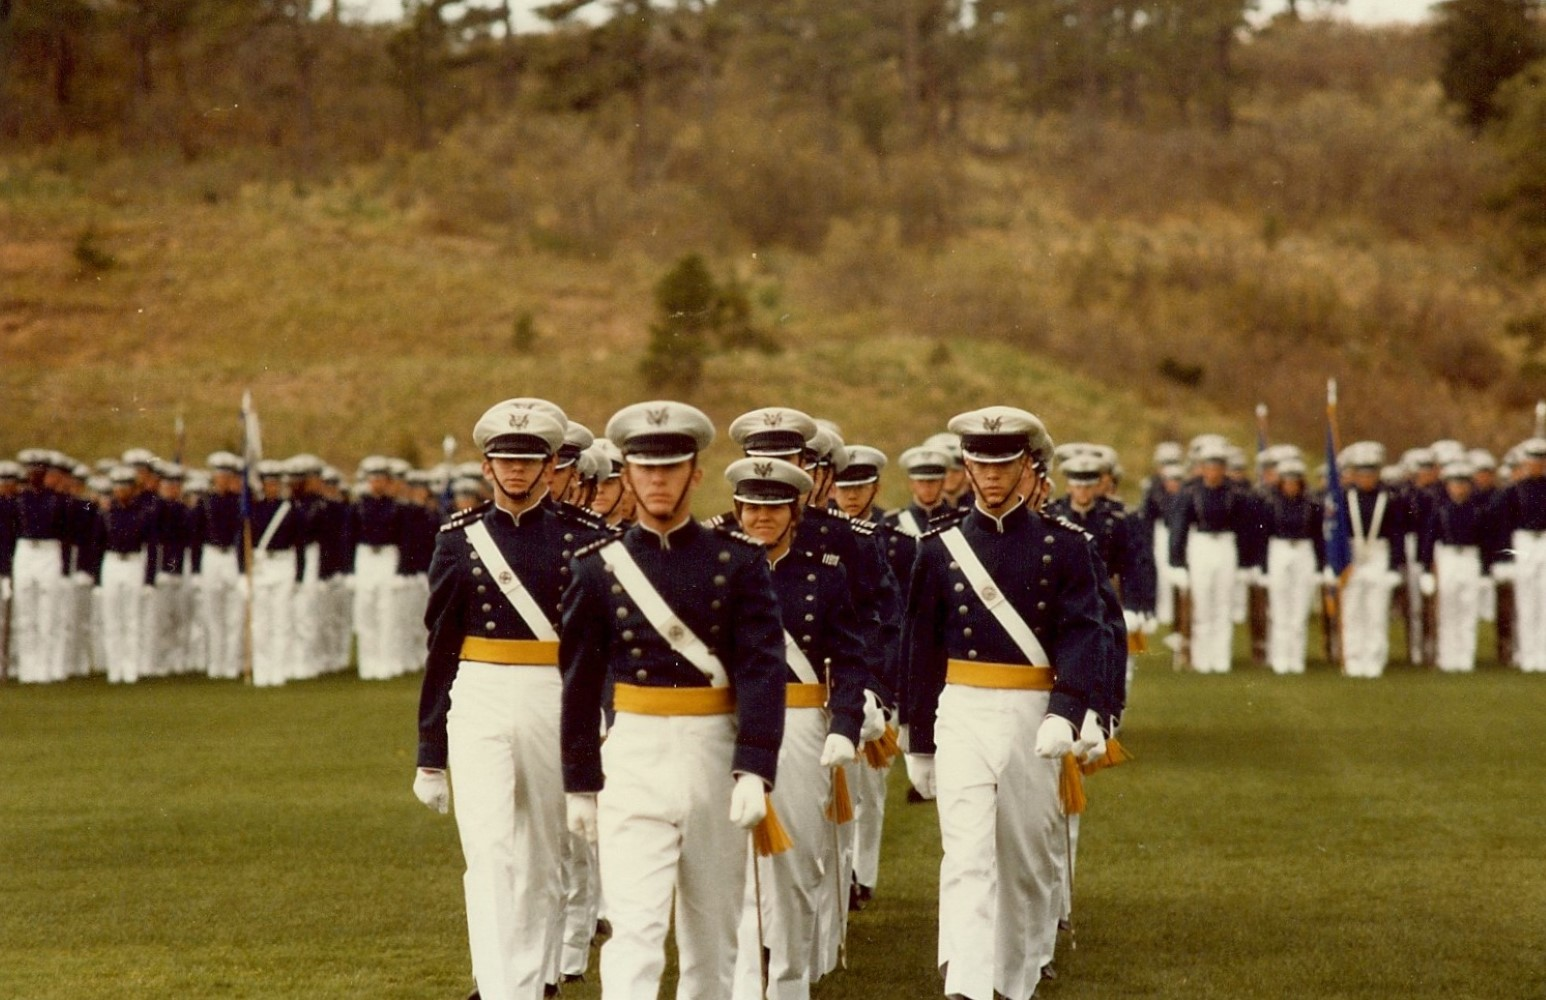 Durst was one of the first women to graduate from the US Air Force Academy. Image: Kathi Durst